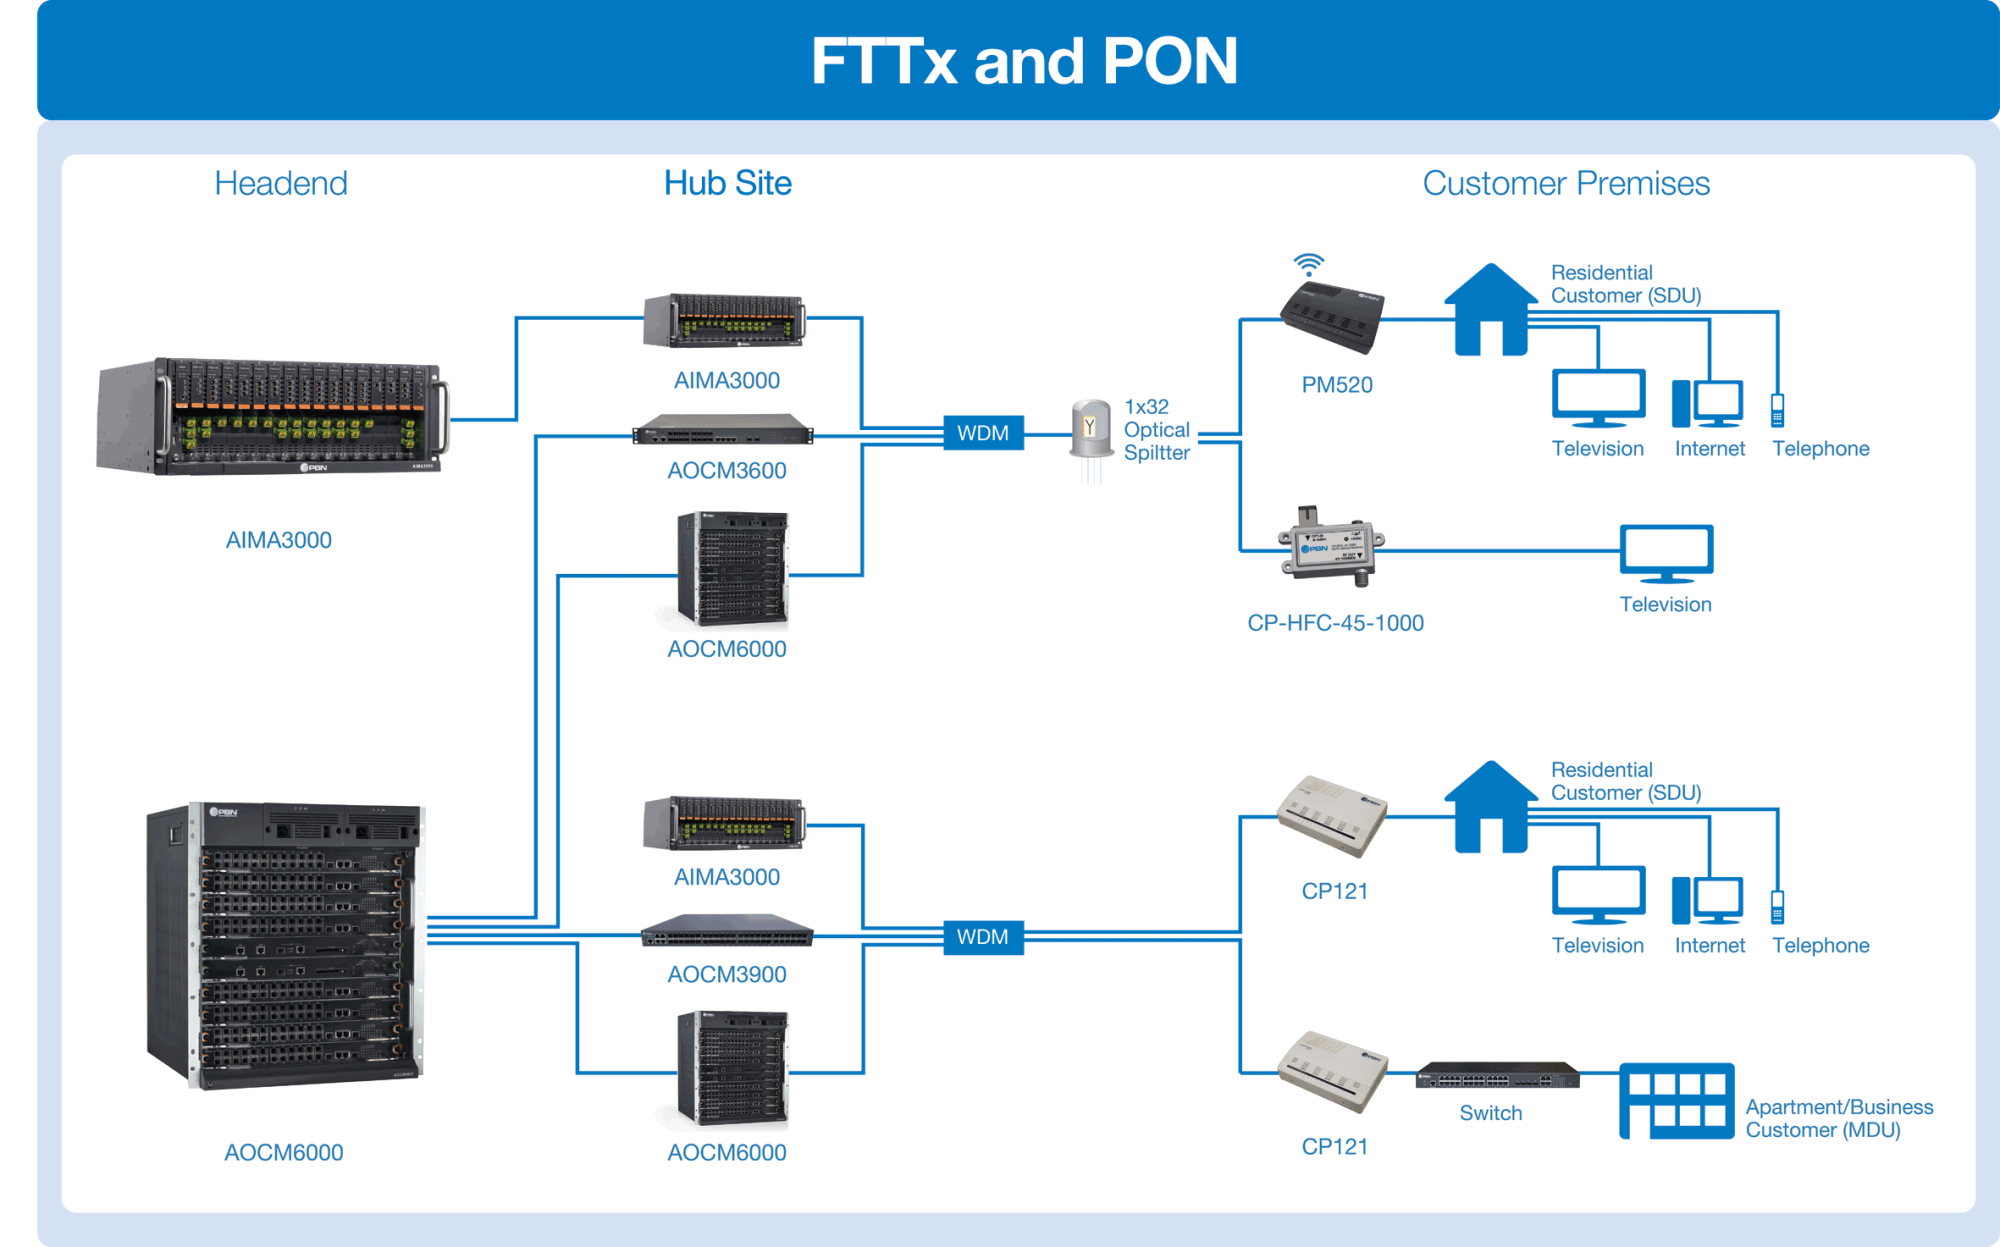 hight resolution of for the catv overlay components the larger aima3000 carrier grade rf headend solution can be scaled down based on operator needs to pbn s 1ru edfa and lte